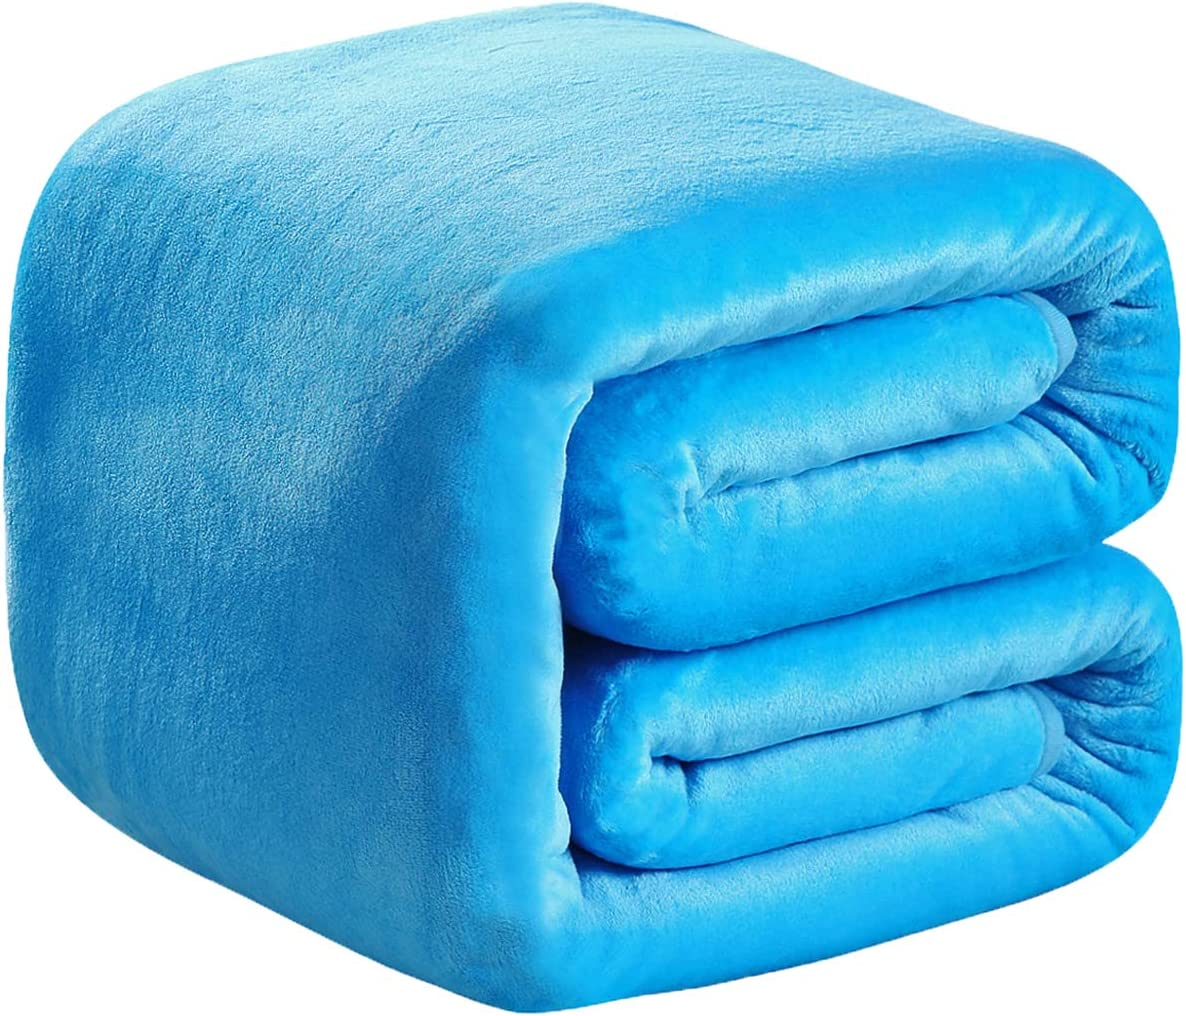 "Richave Polar Fleece Blankets Queen Size Light Blue for The Bed Extra Soft Brush Fabric Super Warm Sofa Blanket 90"" x 90""(Lake Blue Queen)"